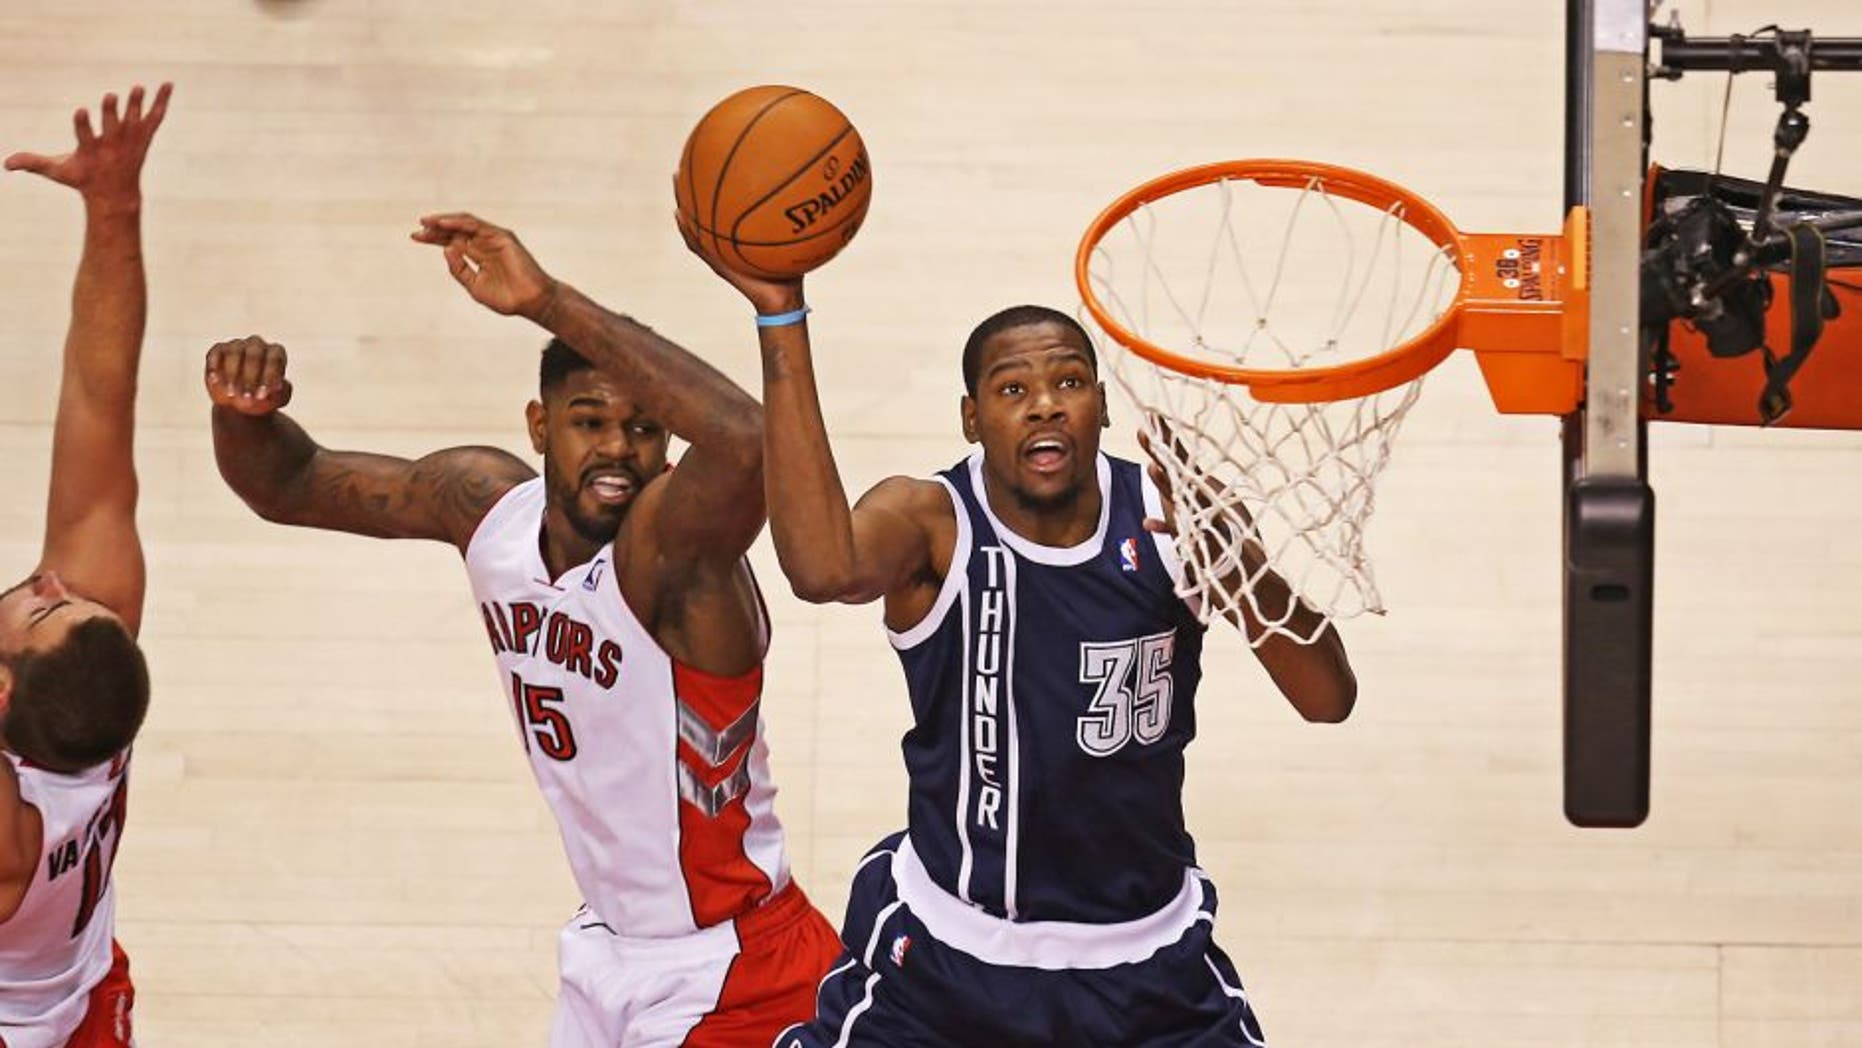 Mar 21, 2014; Toronto, Ontario, CAN; Oklahoma City Thunder forward Kevin Durant (35) goes to the basket and scores past Toronto Raptors forward Amir Johnson (15) at Air Canada Centre. Mandatory Credit: Tom Szczerbowski-USA TODAY Sports